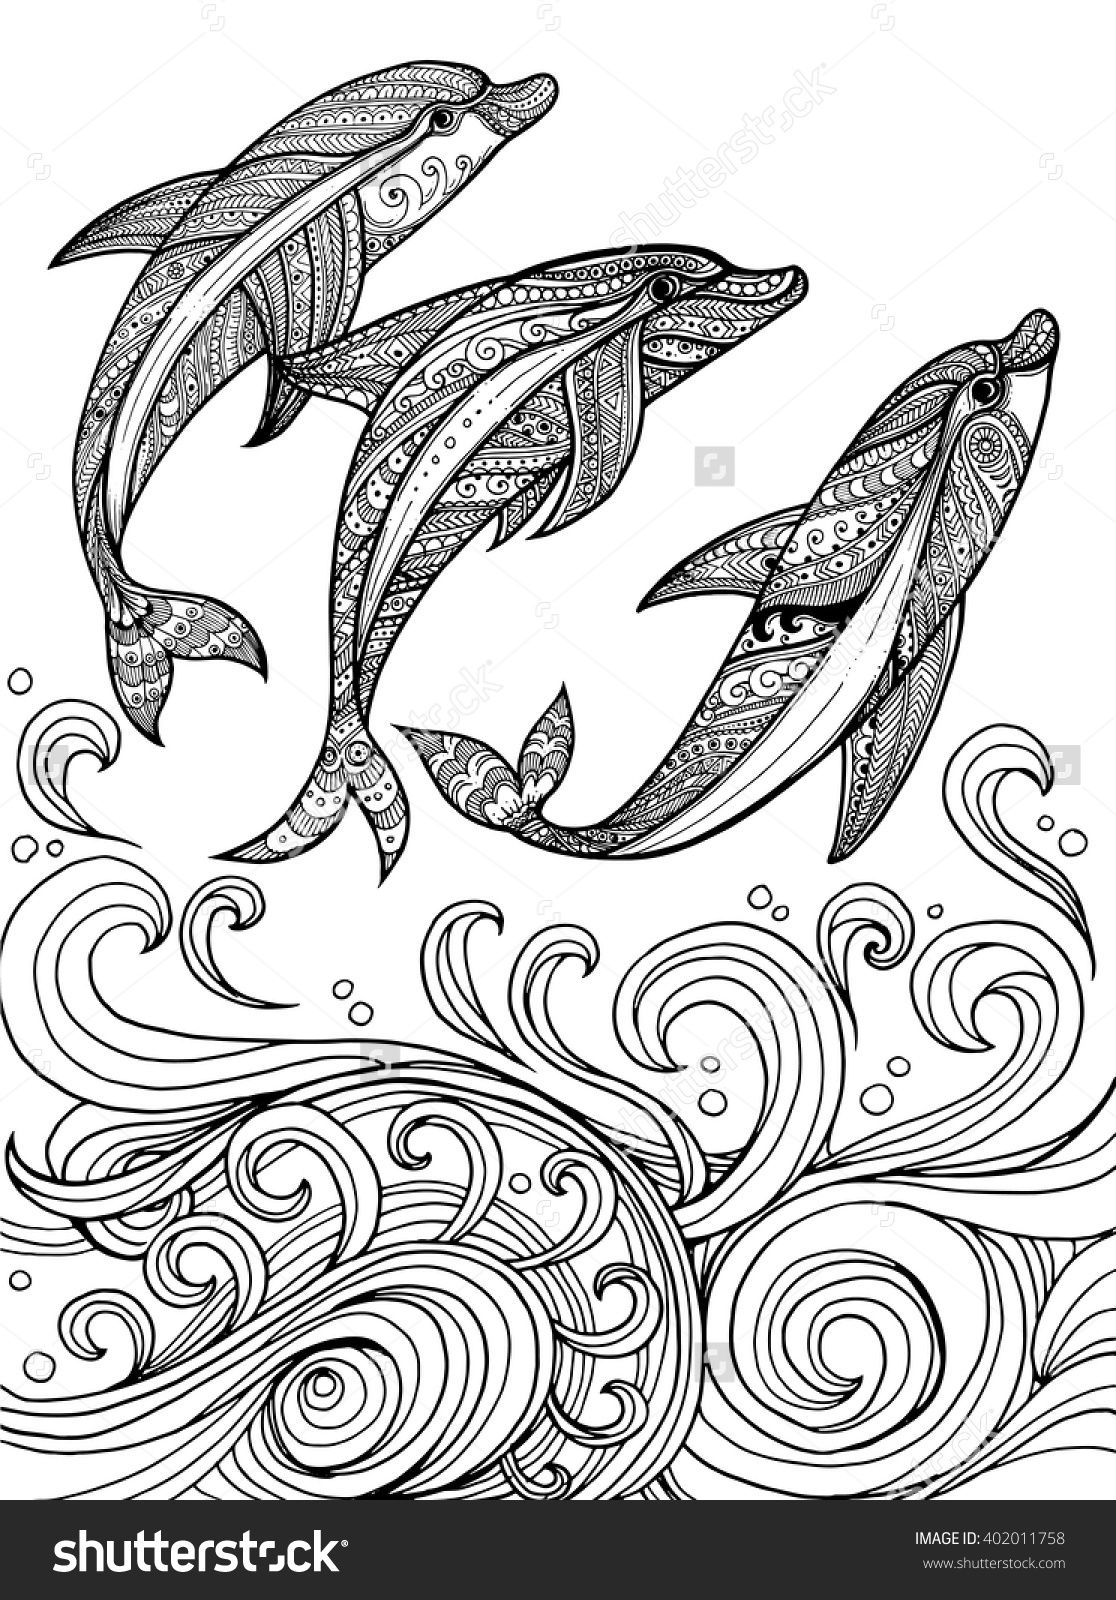 Coloring pages for adults zentangle - Zentangle Dolphins In Scrolling Sea Wave For Adult Coloring Page